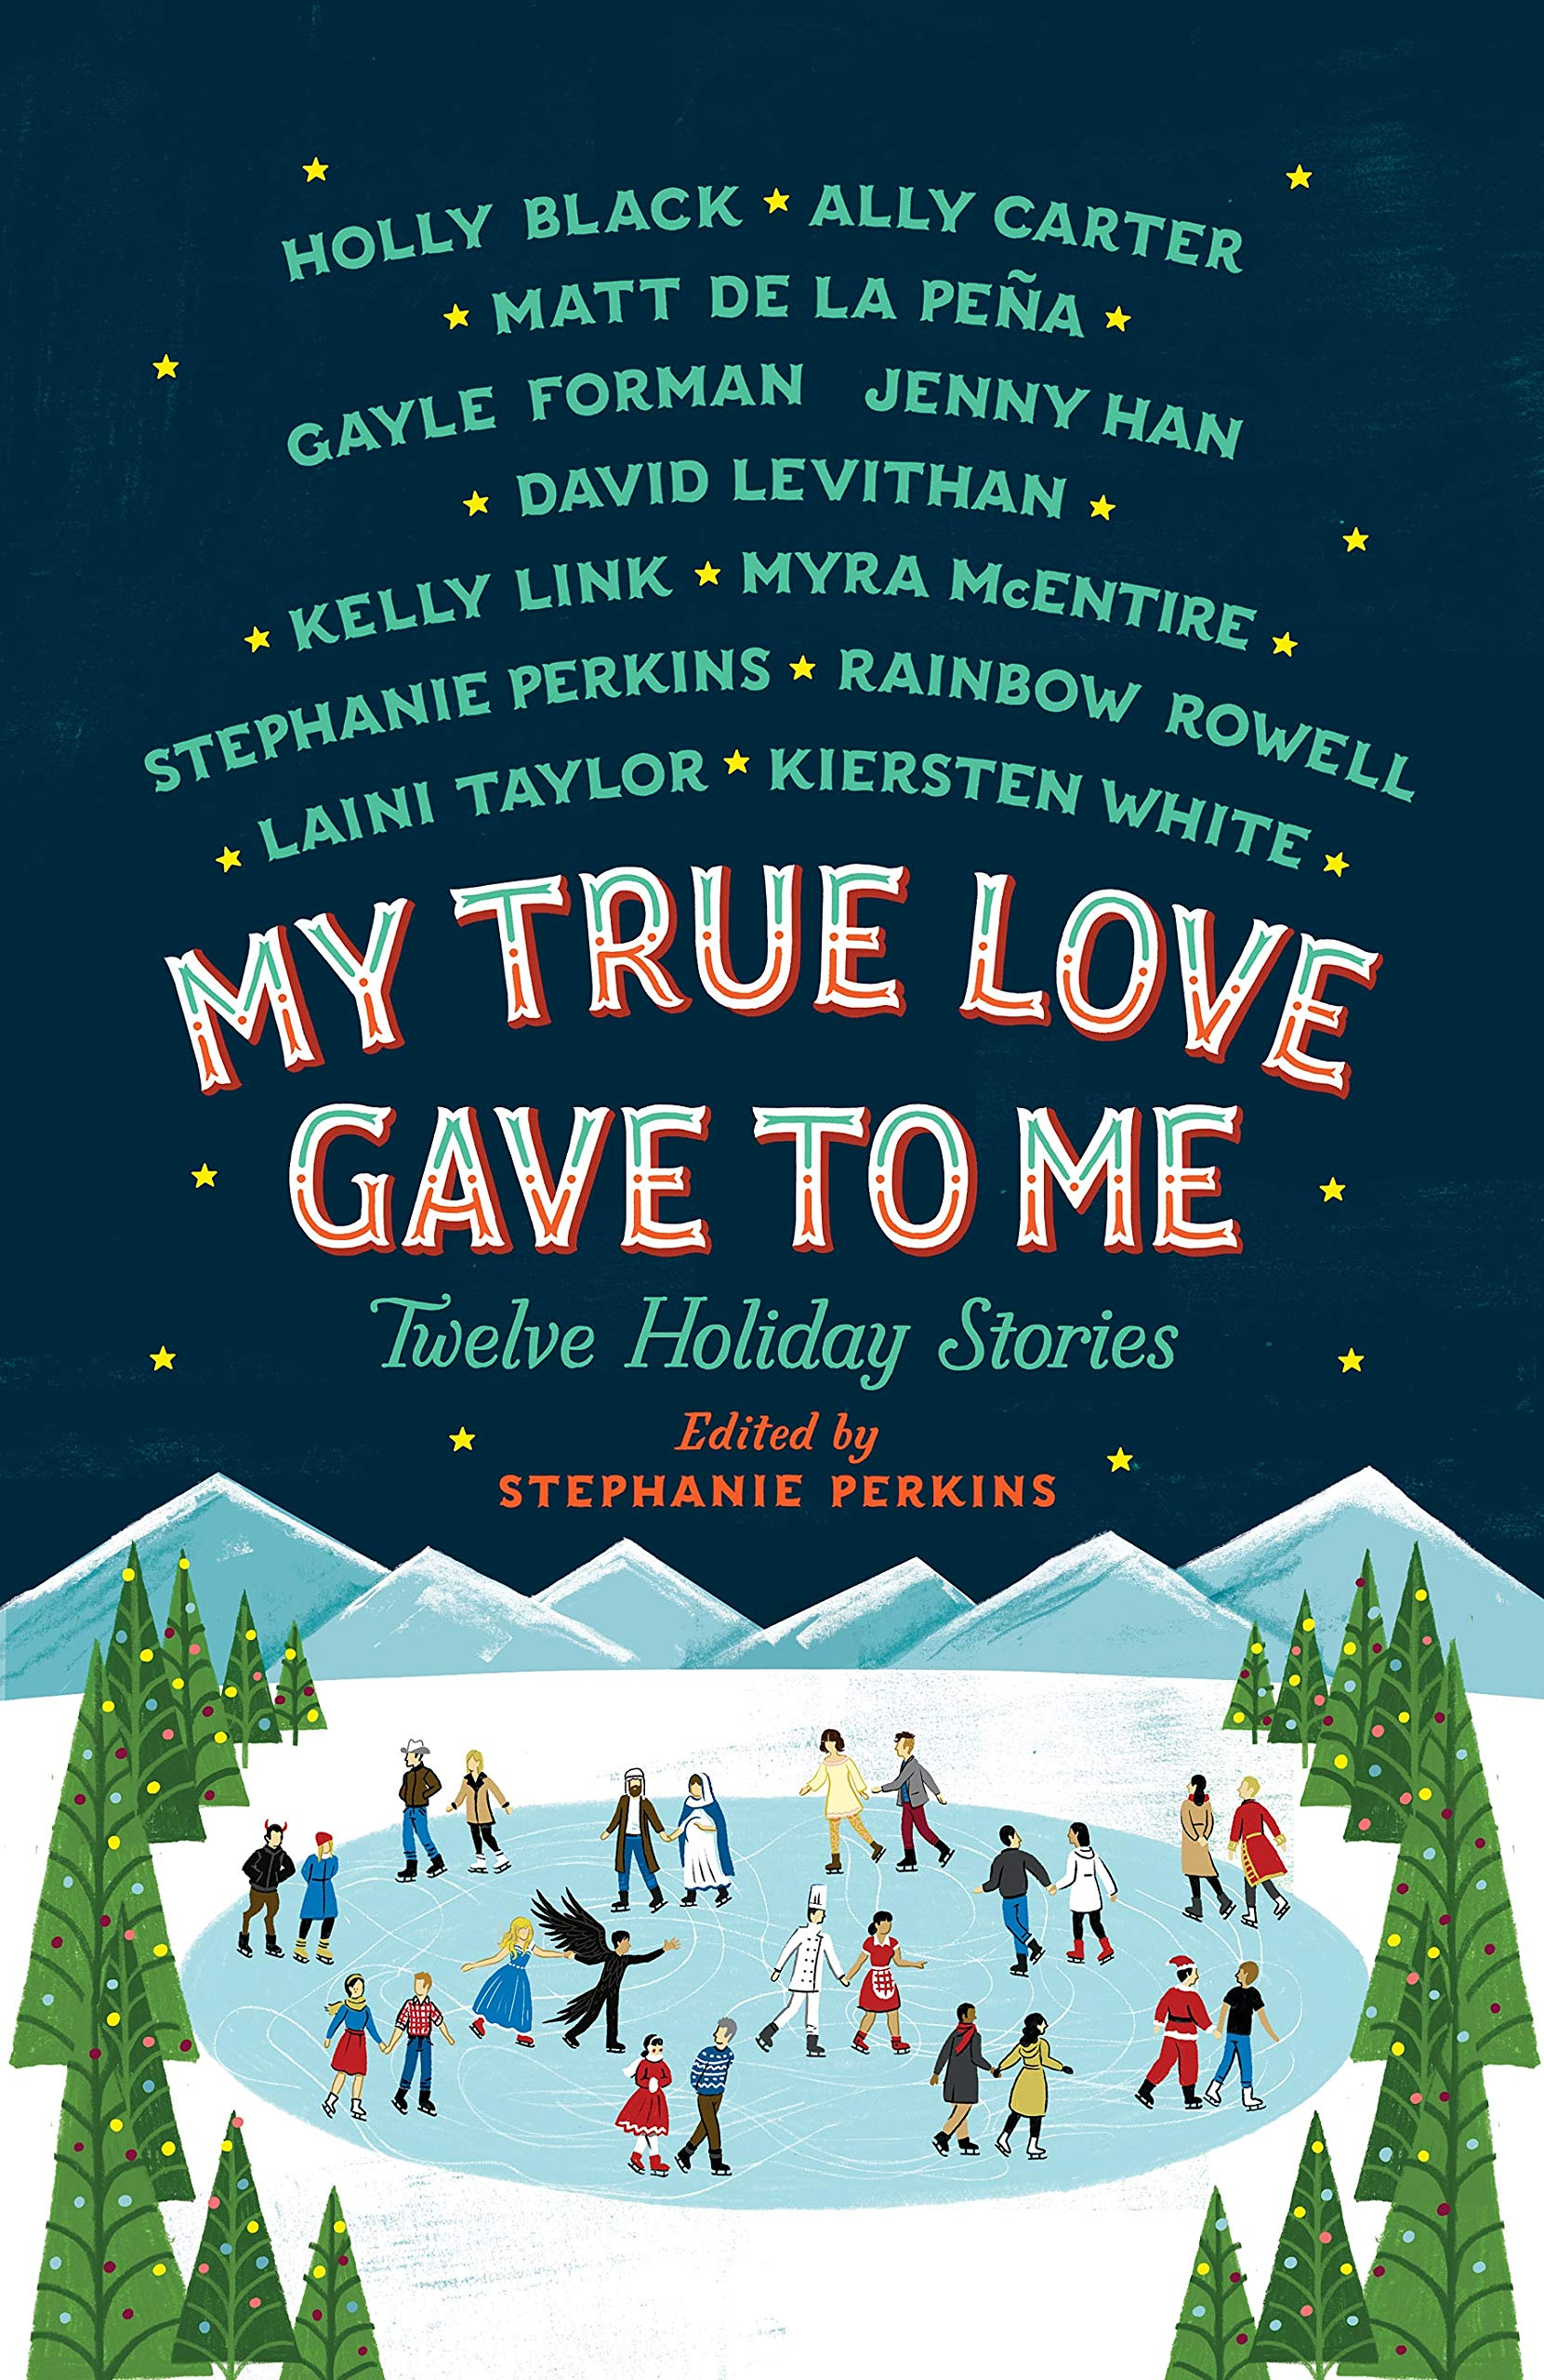 Amazon.com: My True Love Gave to Me: Twelve Holiday Stories  (9781250059314): Perkins, Stephanie, Black, Holly, Carter, Ally, de la  Pena, Mathew, Forman, Gayle, Han, Jenny, Levithan, David, Link, Kelly,  McEntire, Myra, Rowell,